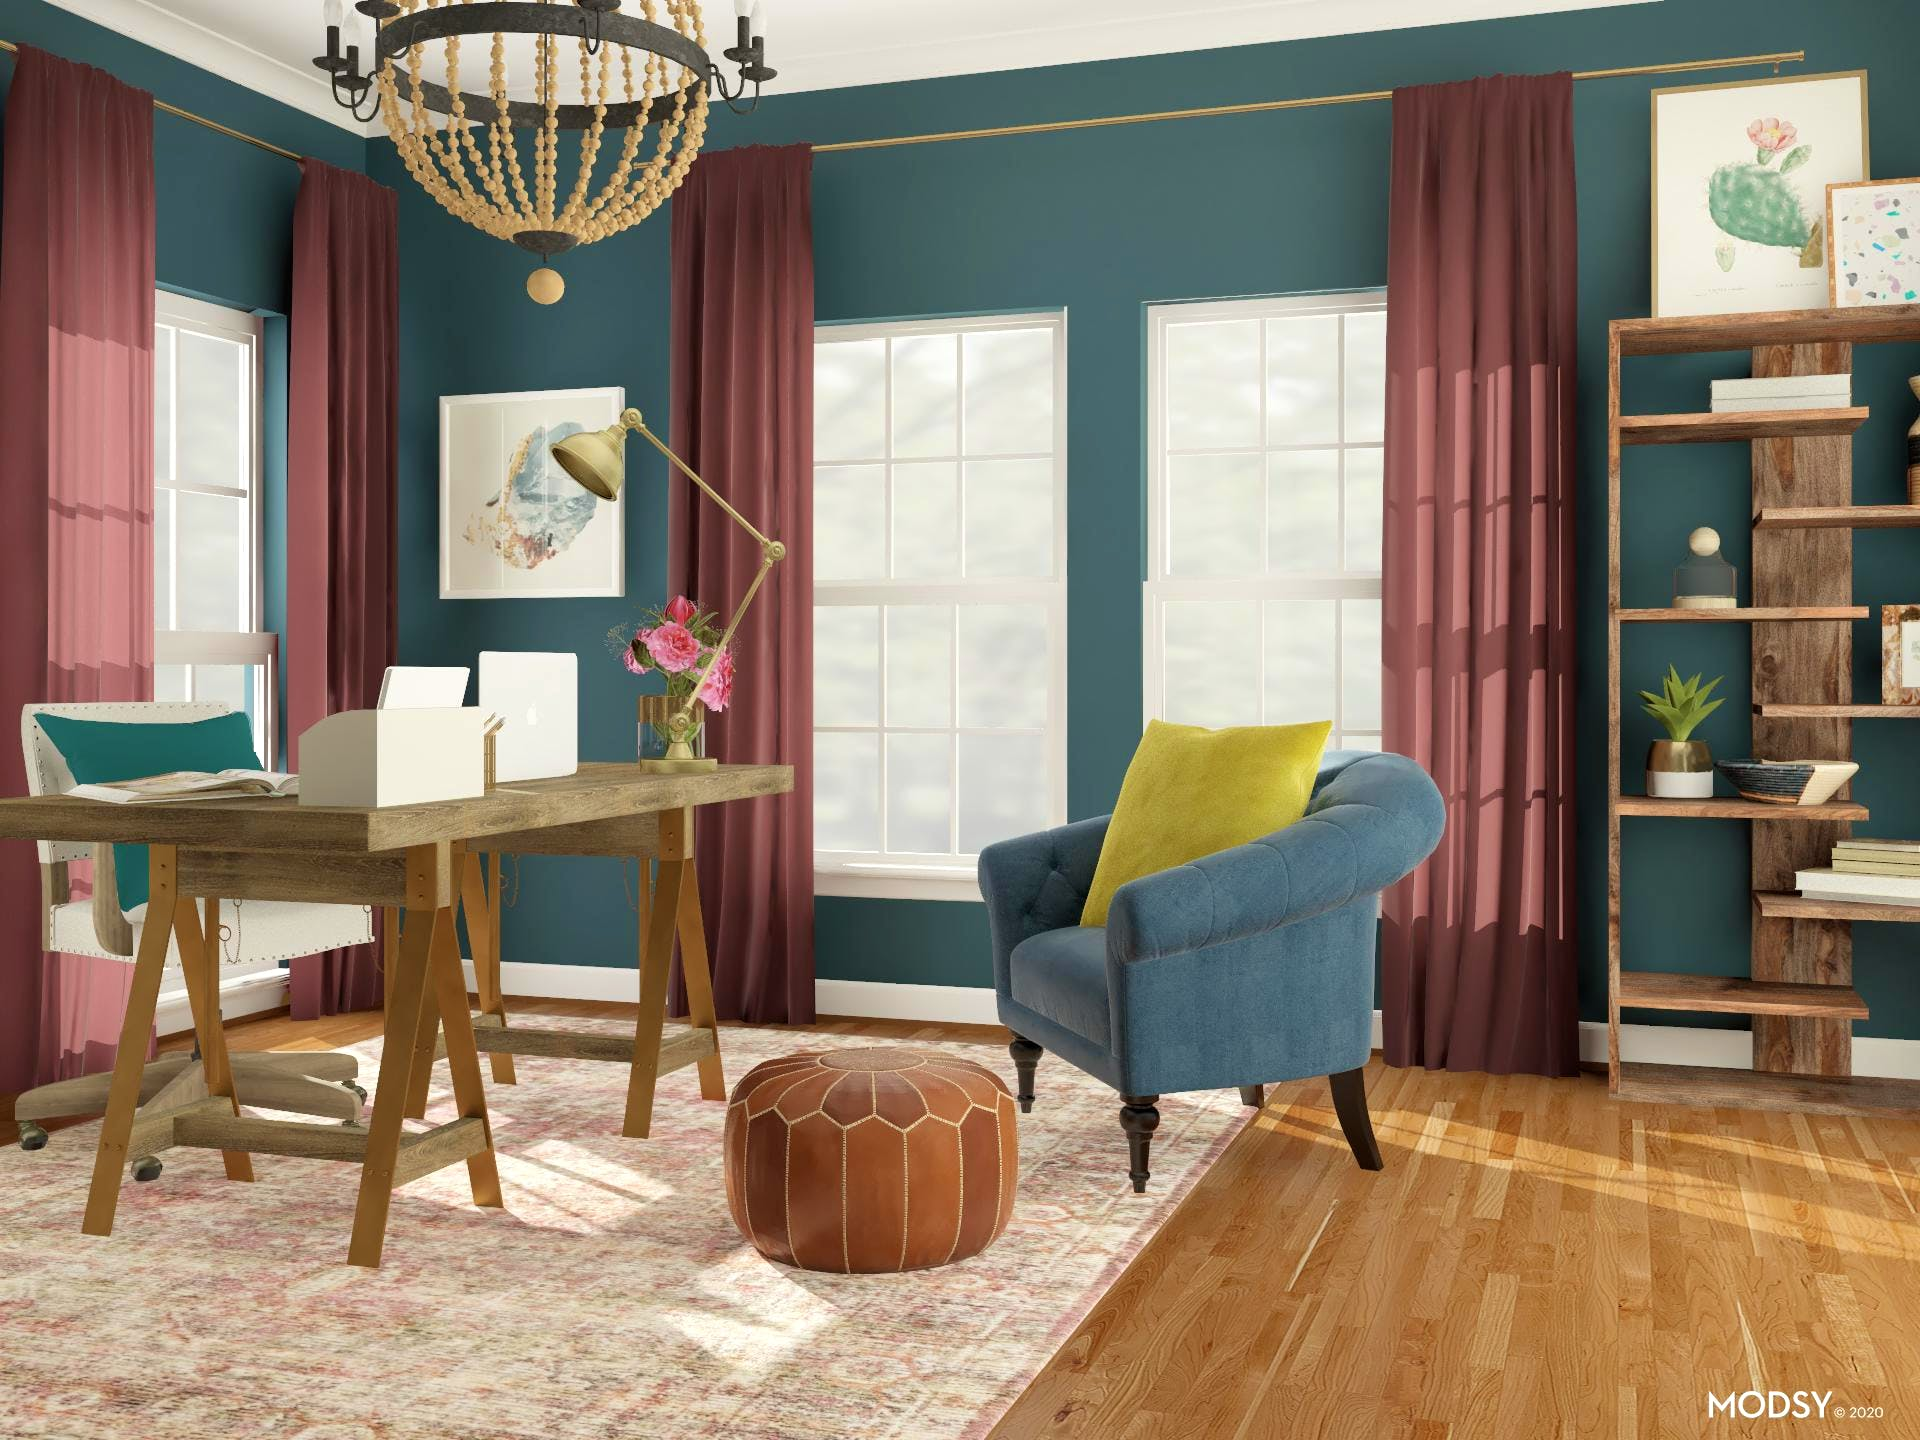 Rustic In Jewel Tones: Home Office